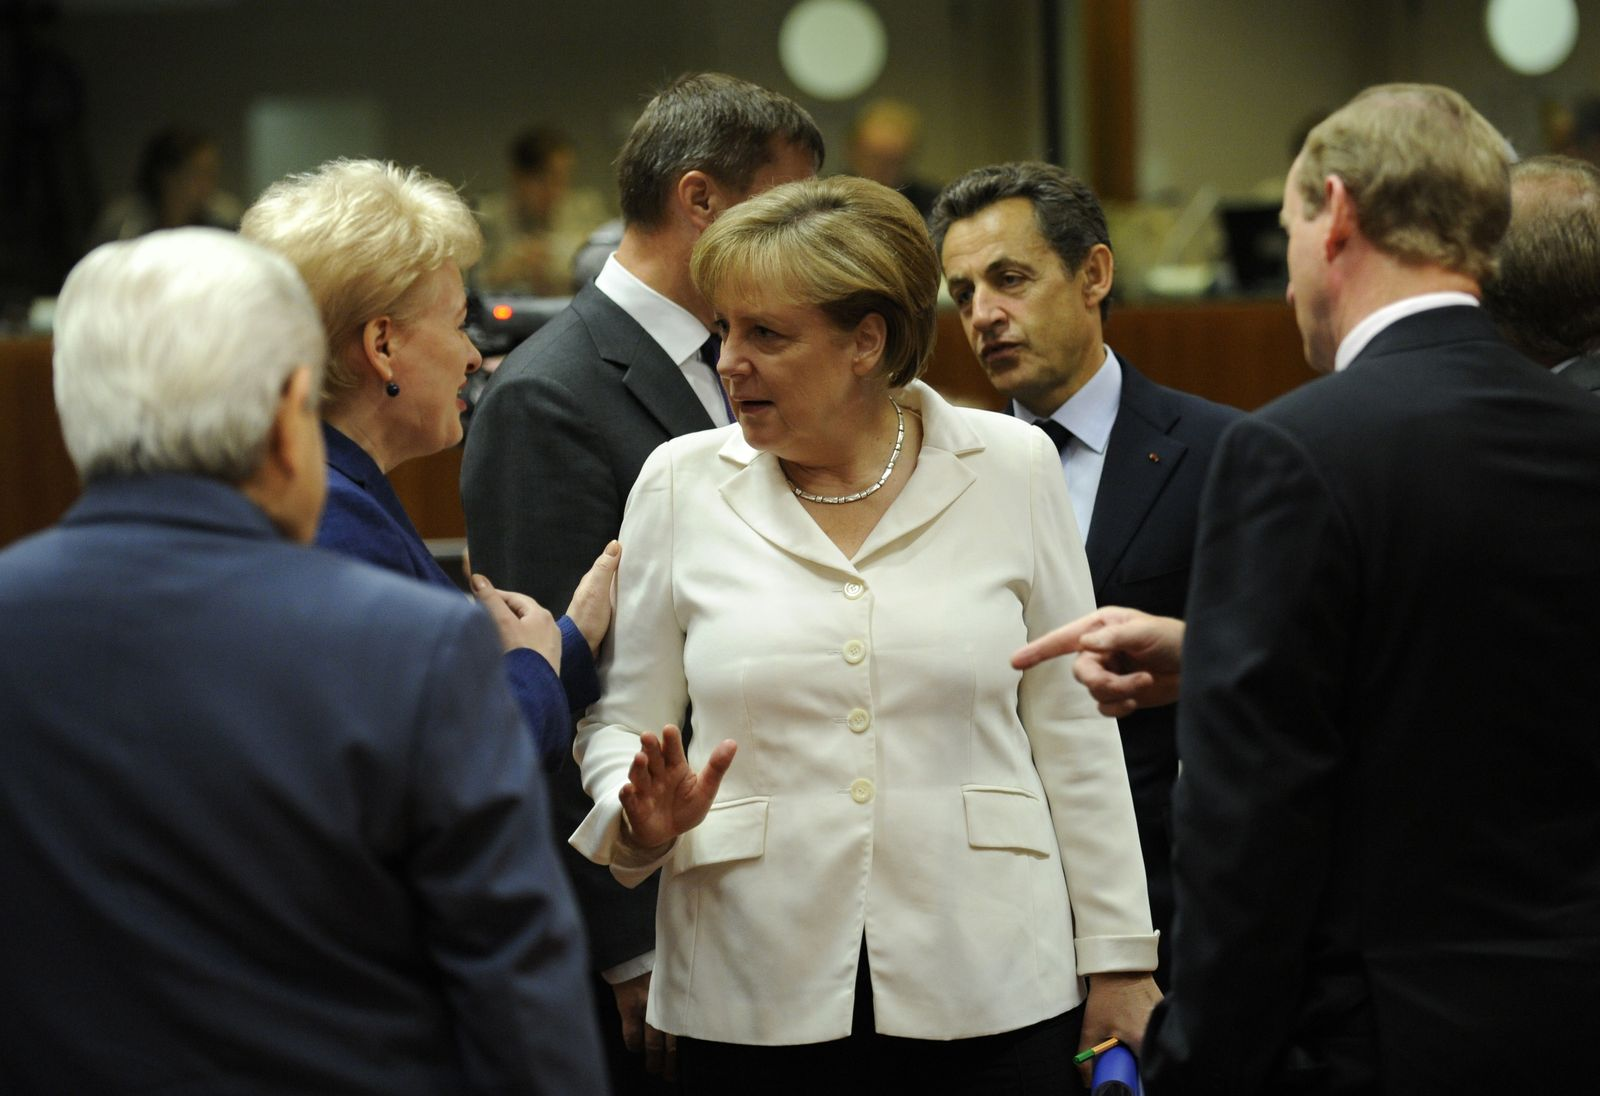 BELGIUM-EU-GREECE-EUROZONE-SUMMIT